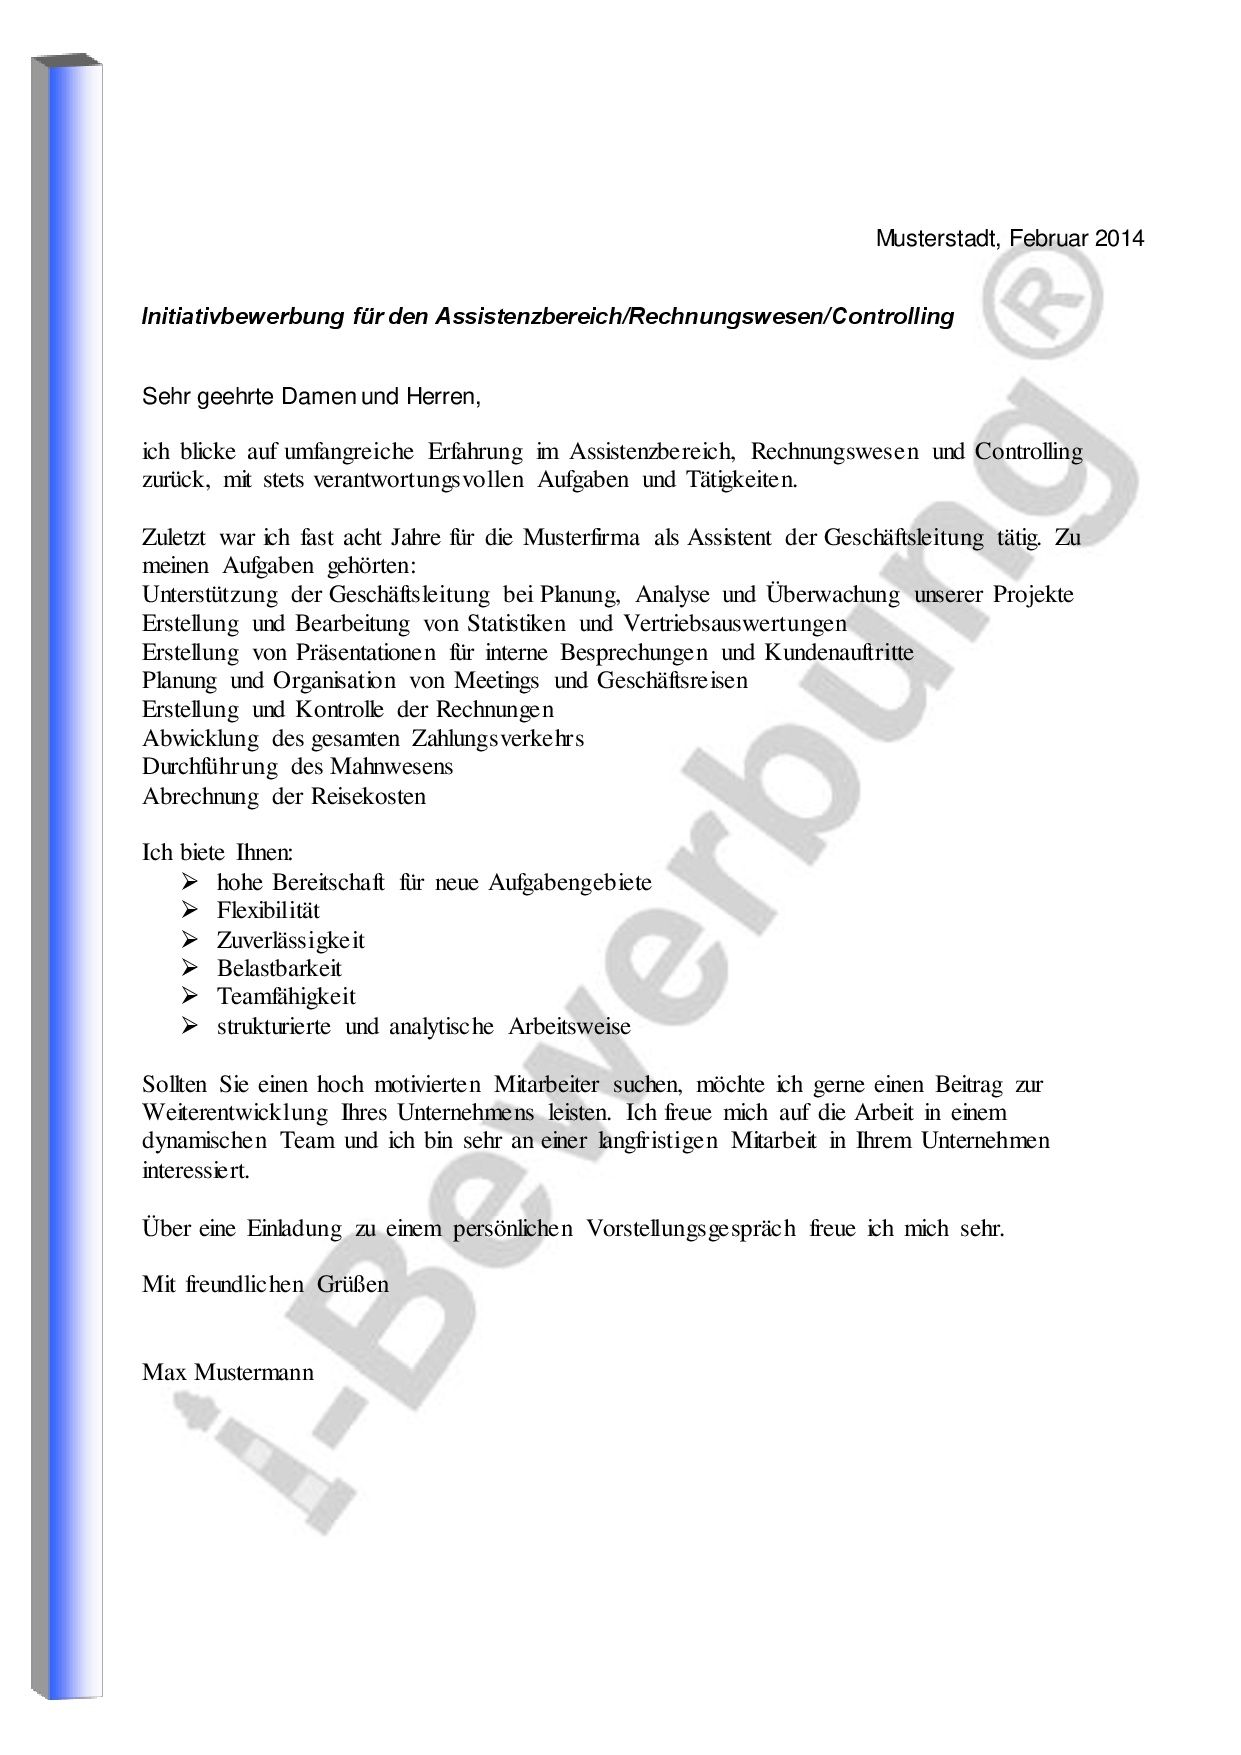 Das Anschreiben zur i-Bewerbung - Vorlage für die Formulierung Writing  Proposals, Resume,